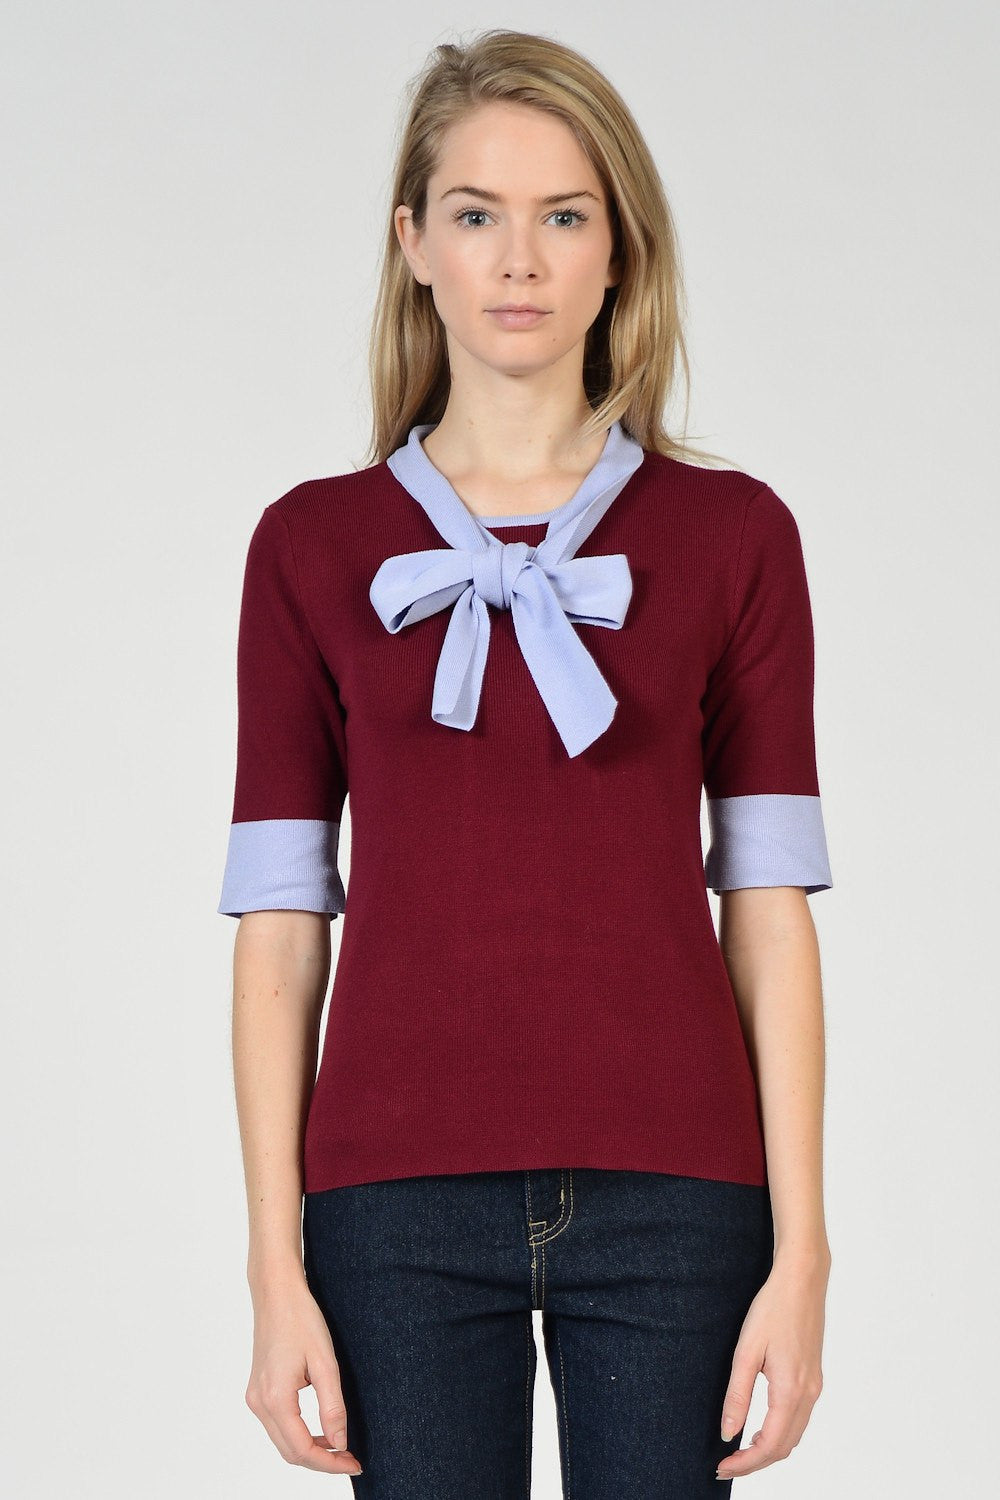 Colorblock Bow Tie Top